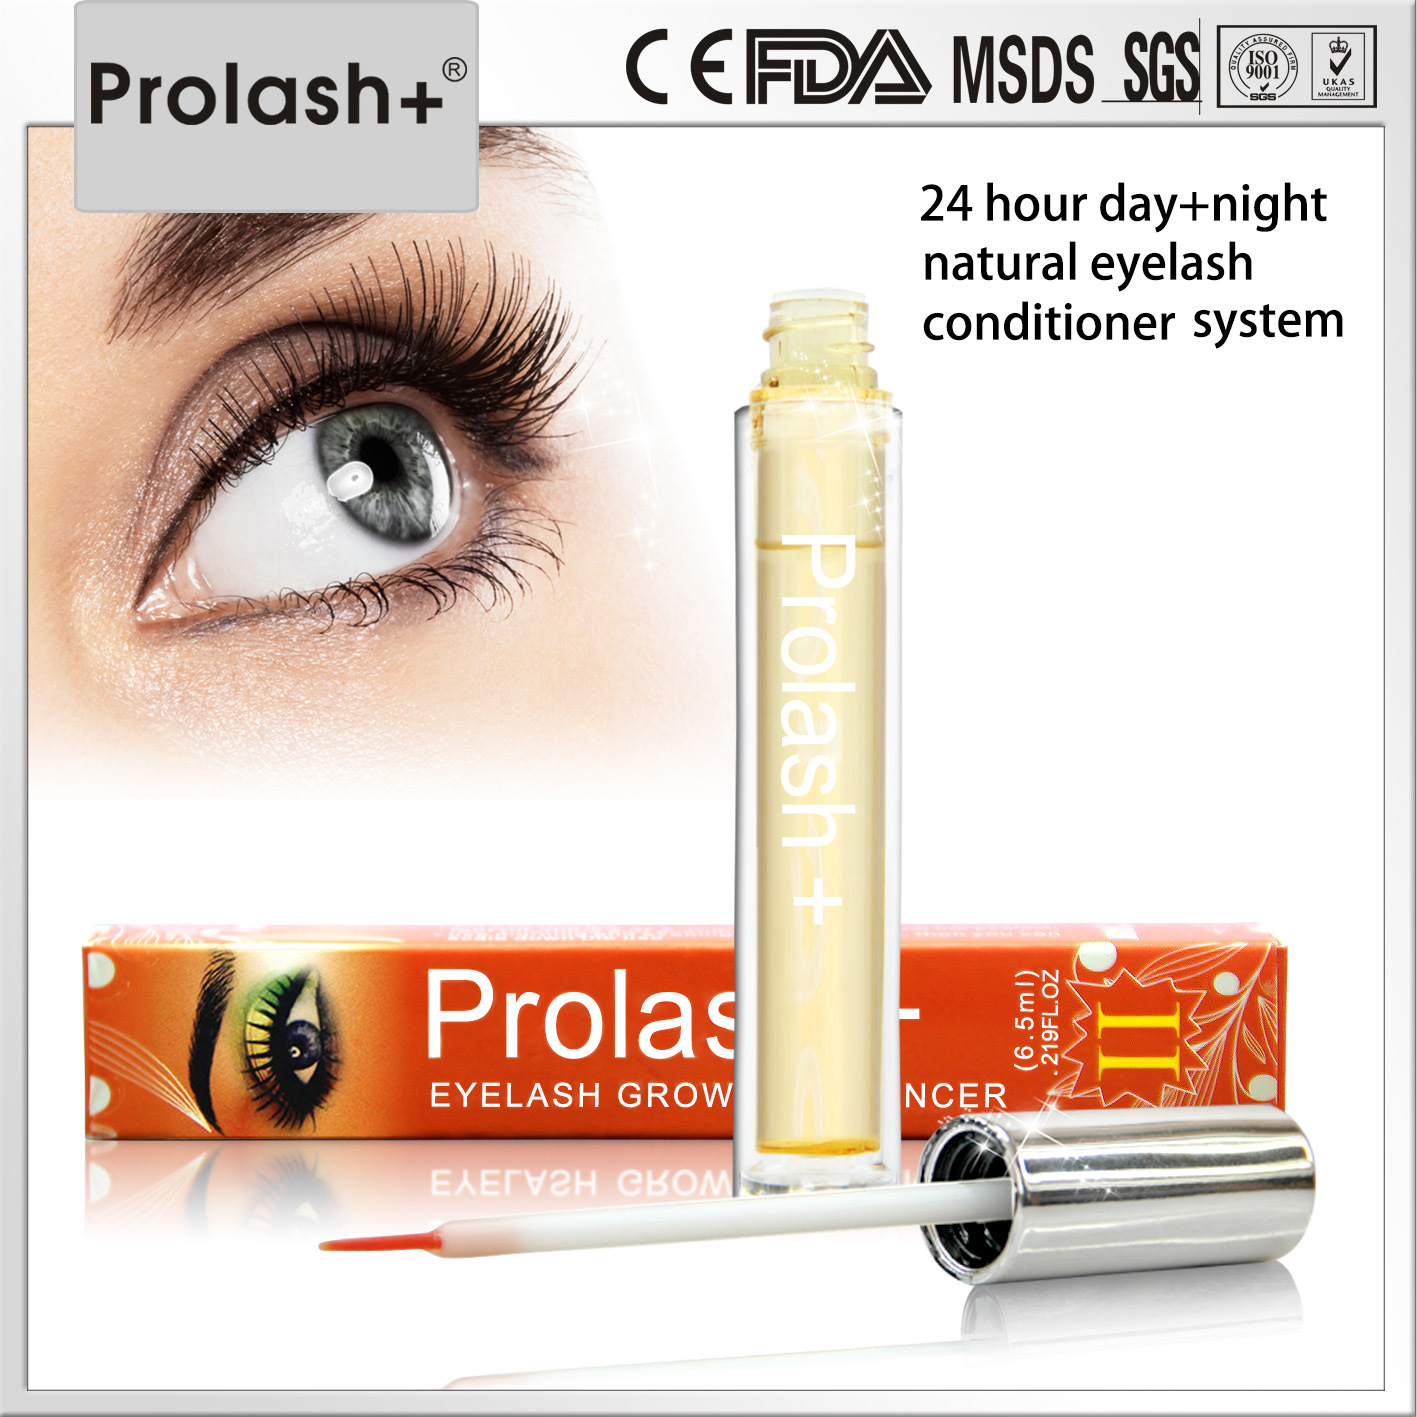 Prolash+ Eyelashes Easy Application Eyelash Growth Liquid Cosmetic